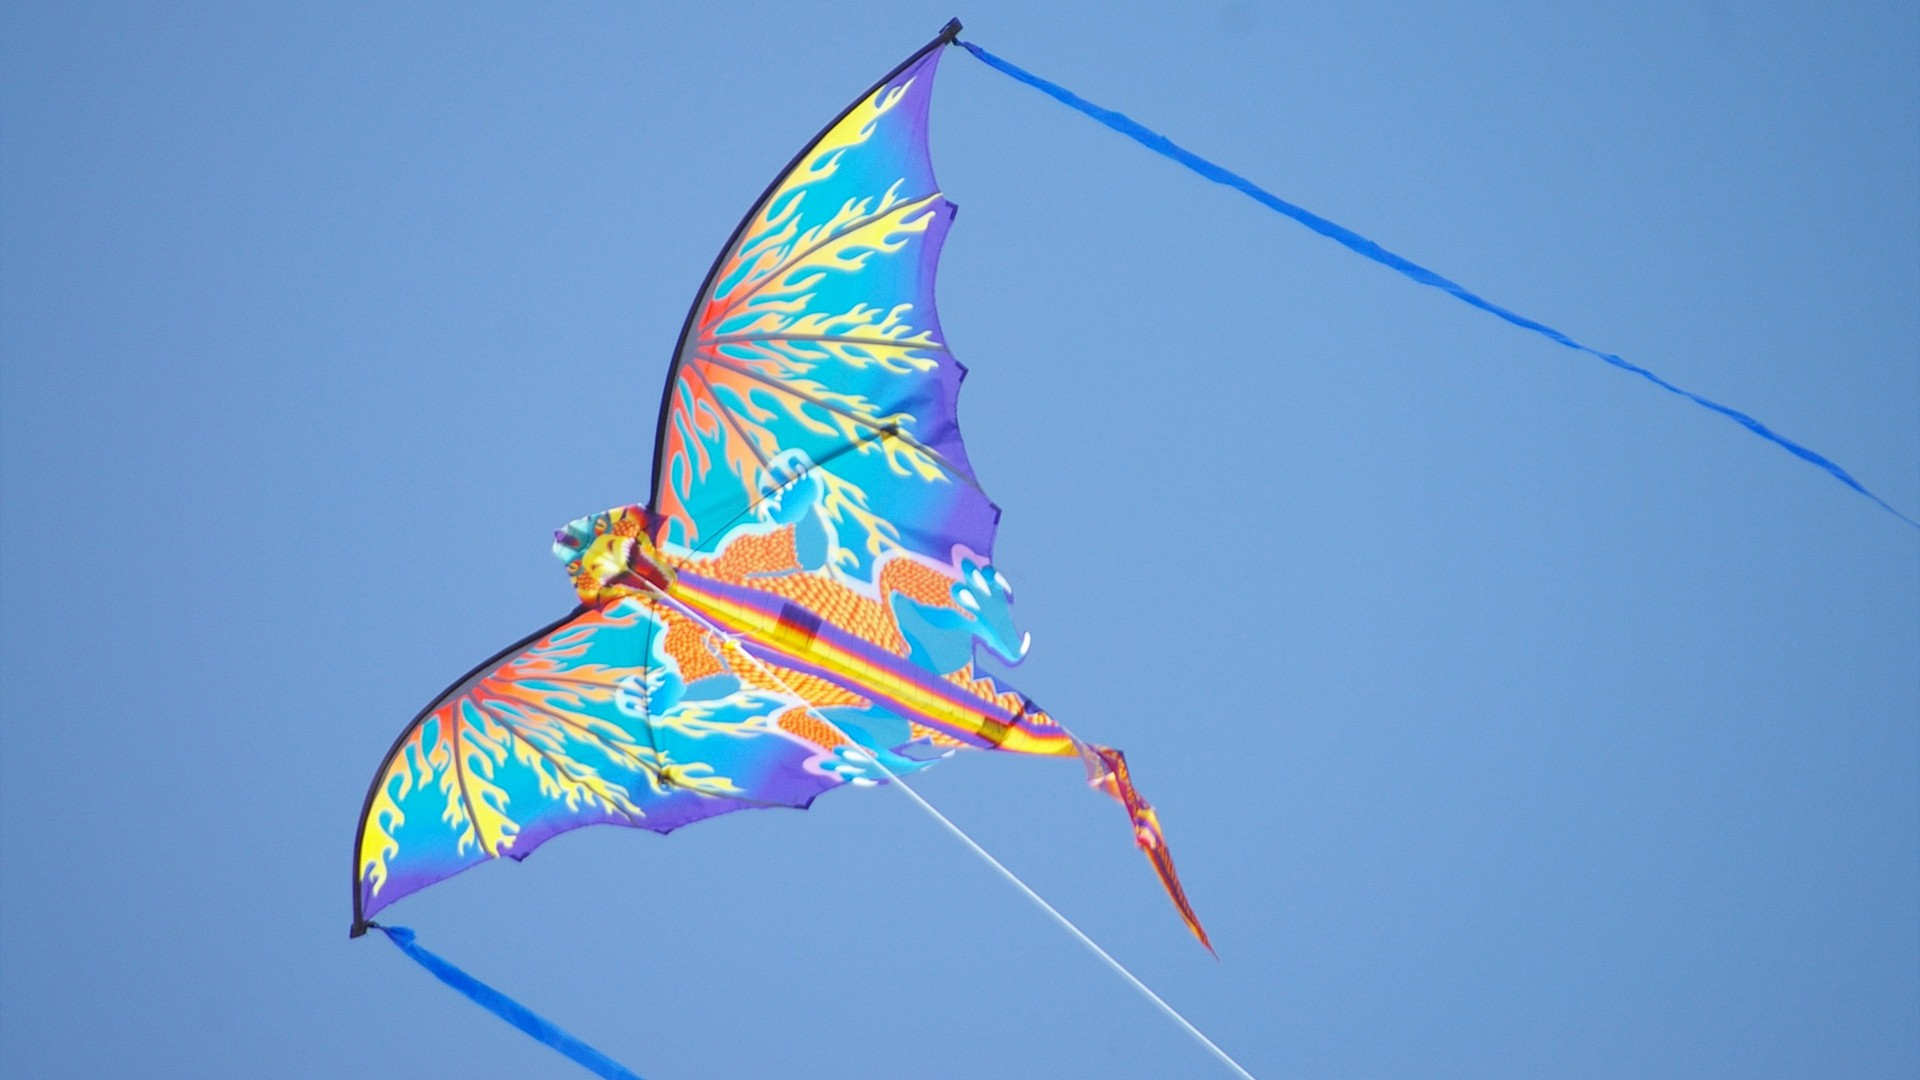 Kite in Sky Photo Background HD Wallpapers 1920x1080